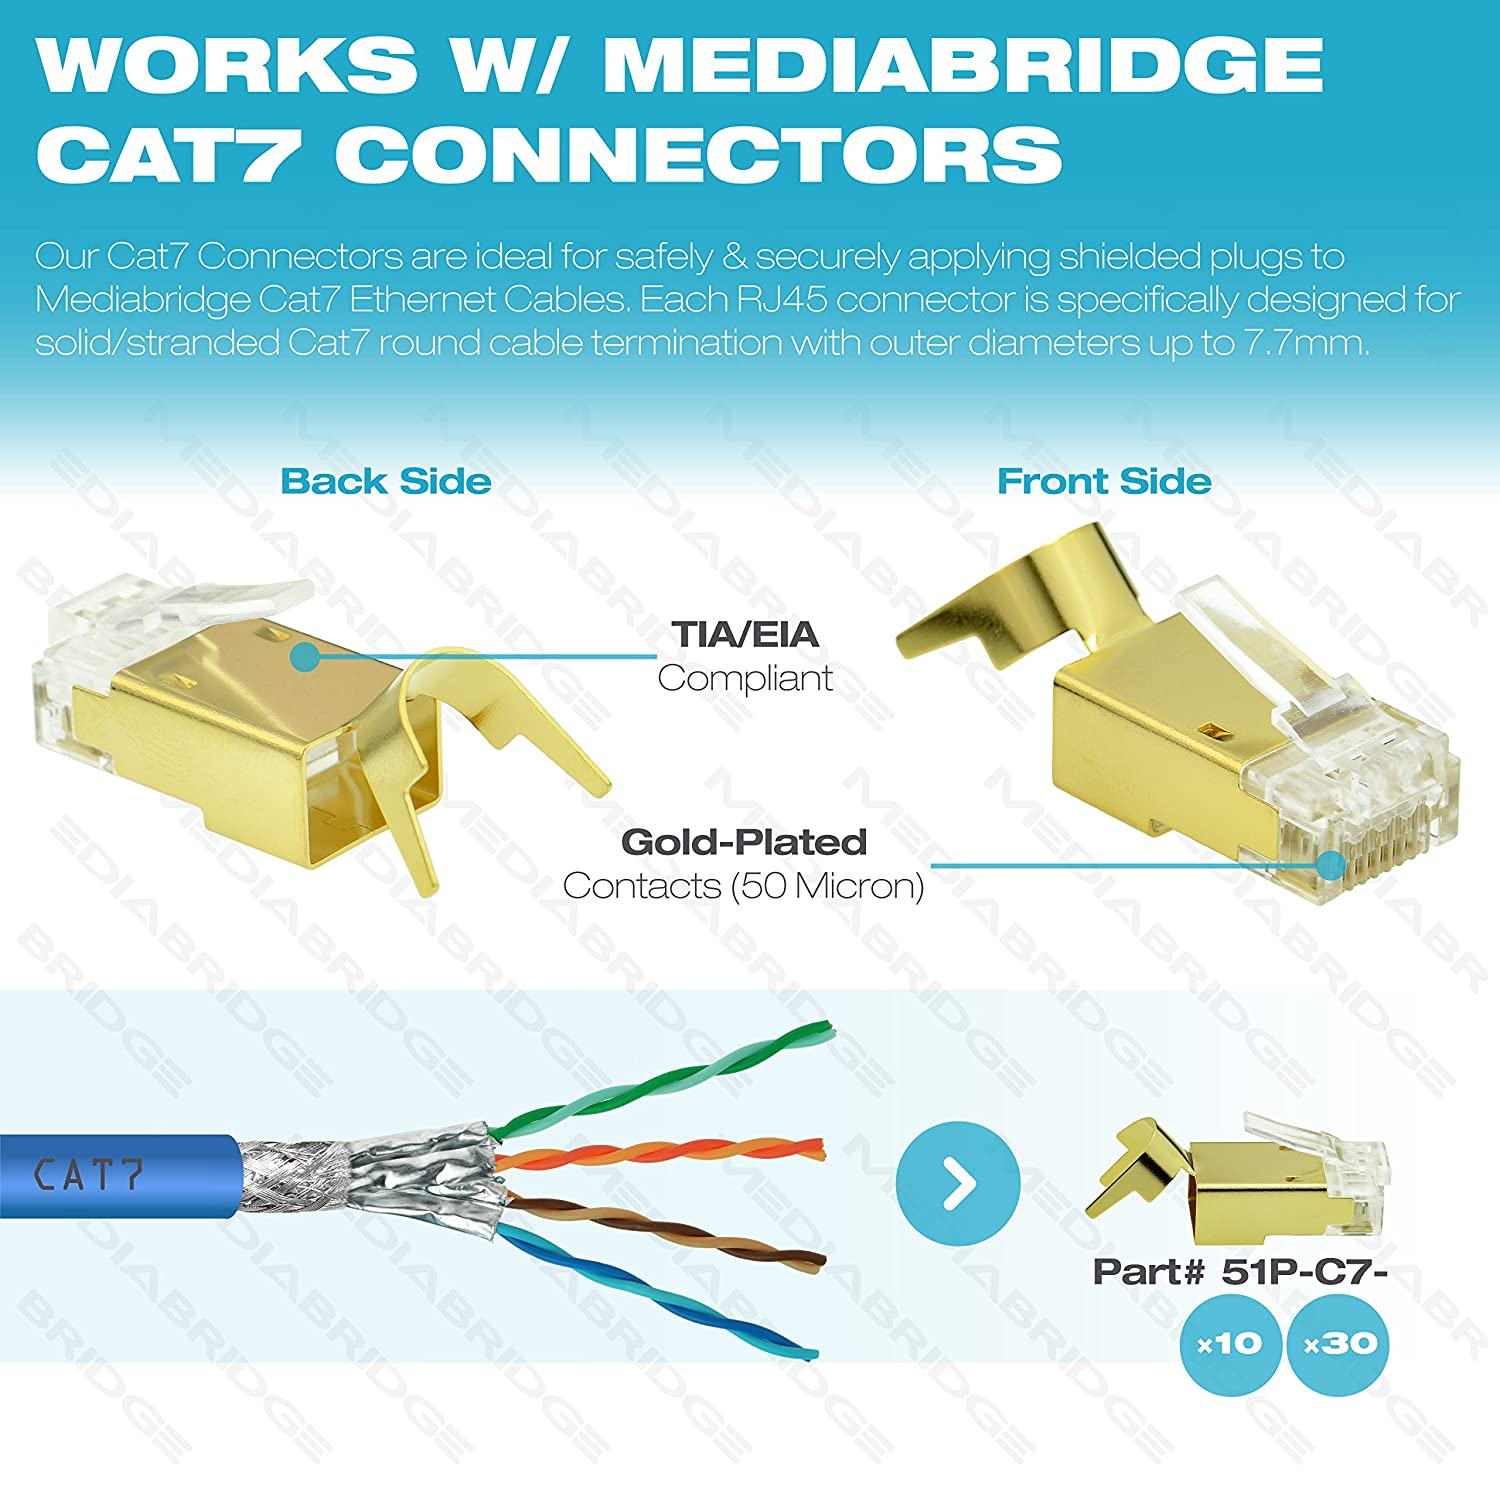 amazon com mediabridge solid copper cat7 ethernet cable (1000 on Network Wiring Diagram for amazon com mediabridge solid copper cat7 ethernet cable (1000 feet, blue) low smoke zero halogen jacket (part c7 1000 blue ) computers & accessories at Cat 6A Wiring-Diagram V